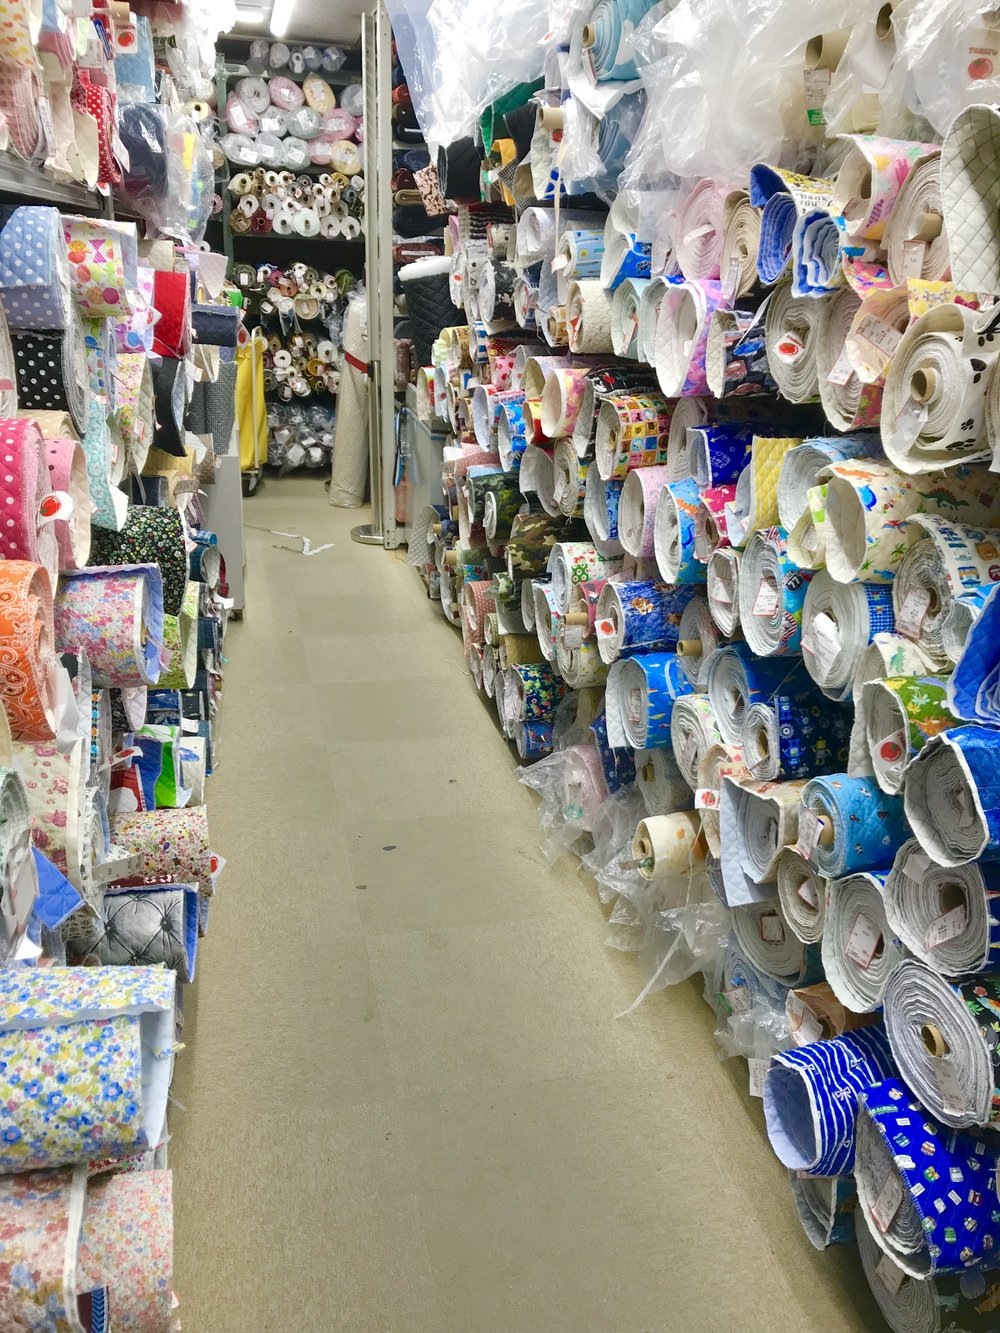 This is about  half  of the pre-quilted cotton fabrics available on the cotton floor at the Main Tomato location.